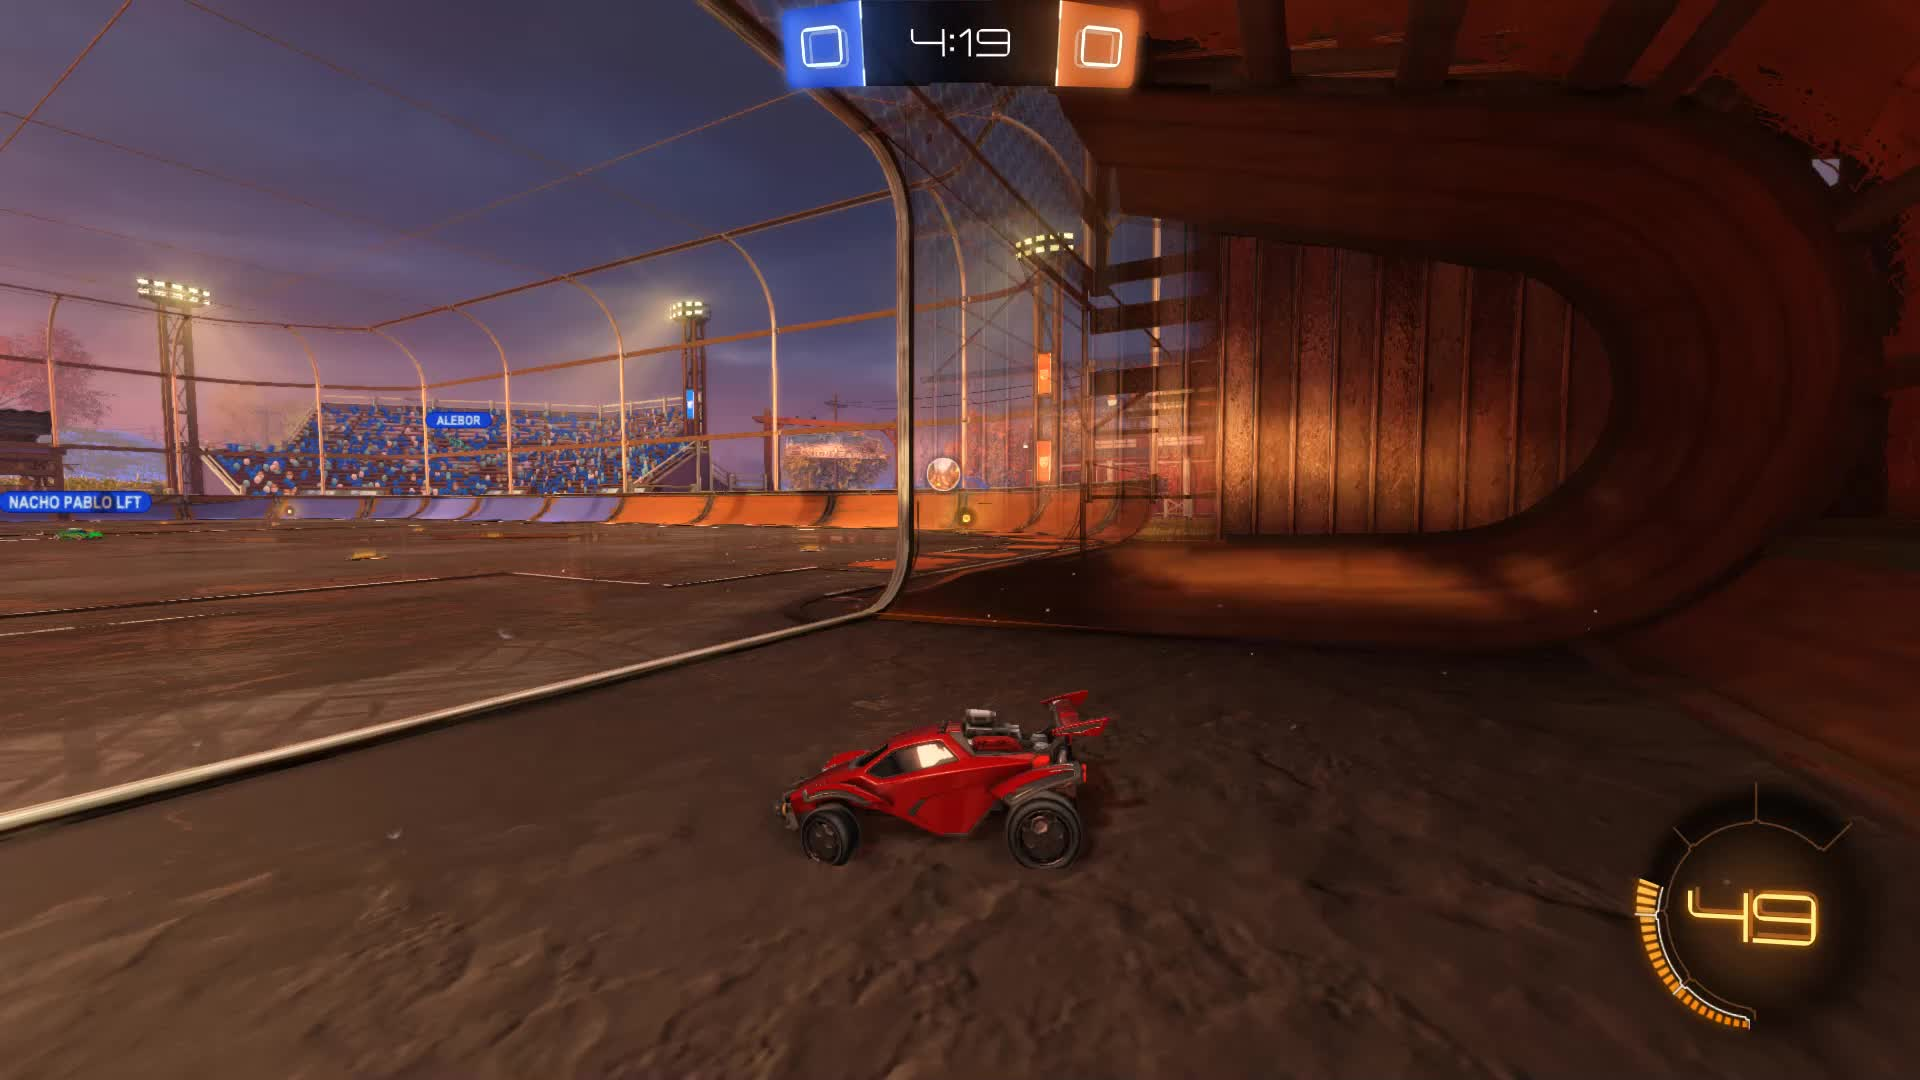 Gif Your Game, GifYourGame, Goal, JAG, Rocket League, RocketLeague, Goal 1: JAG GIFs